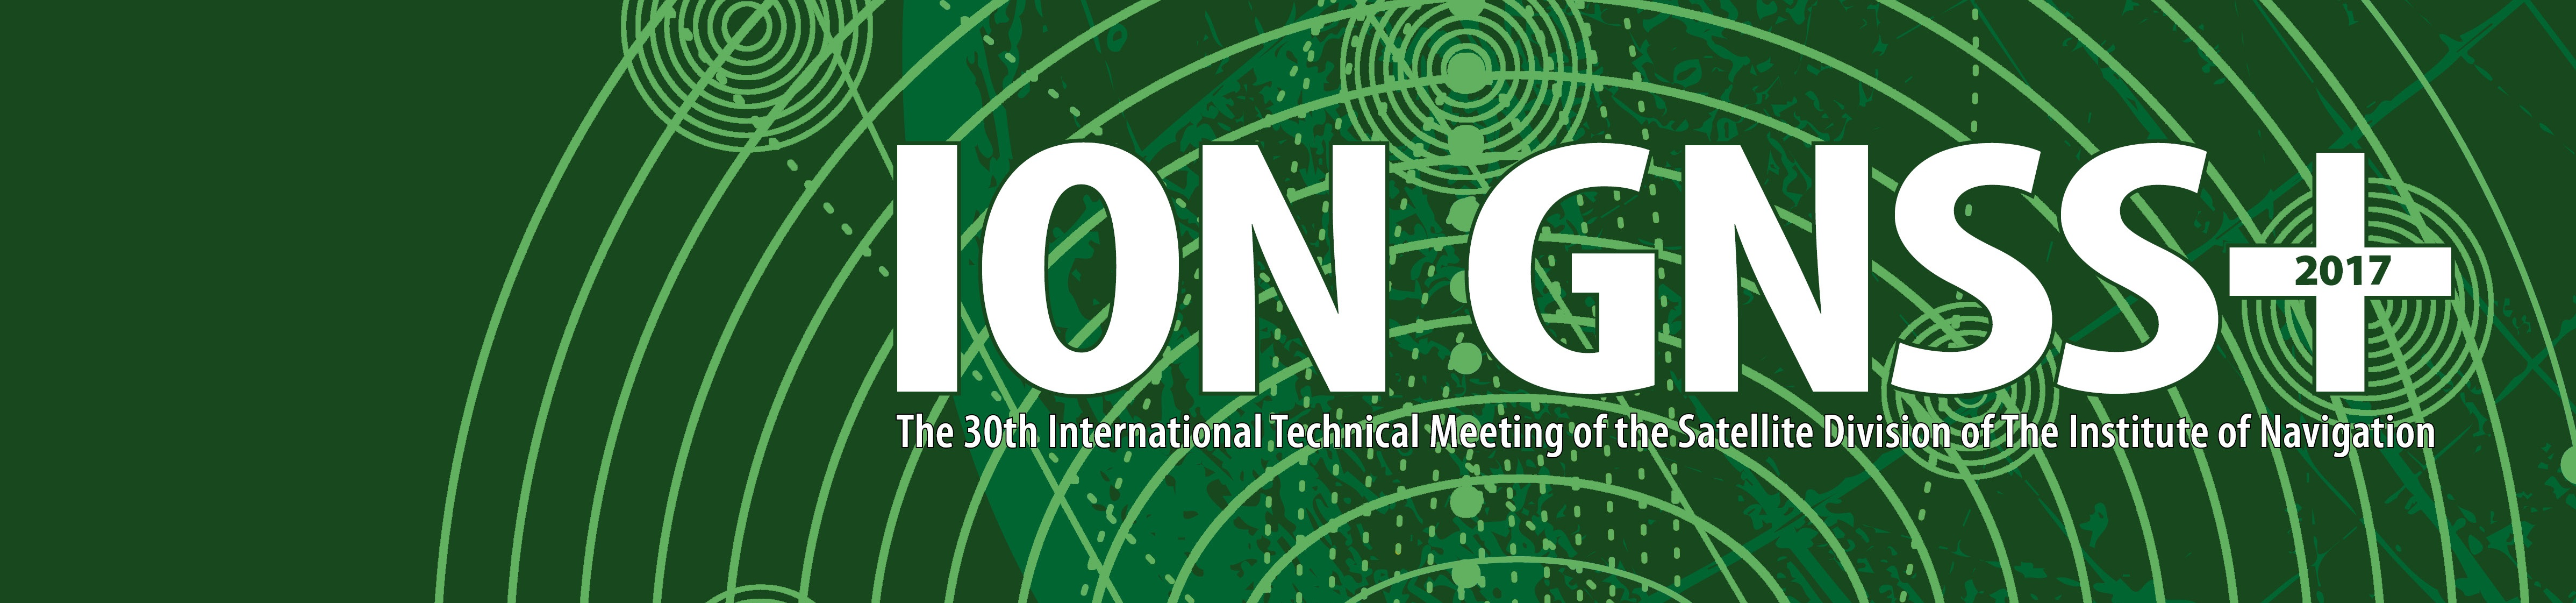 ION GNSS 2017 Subsite Header 5